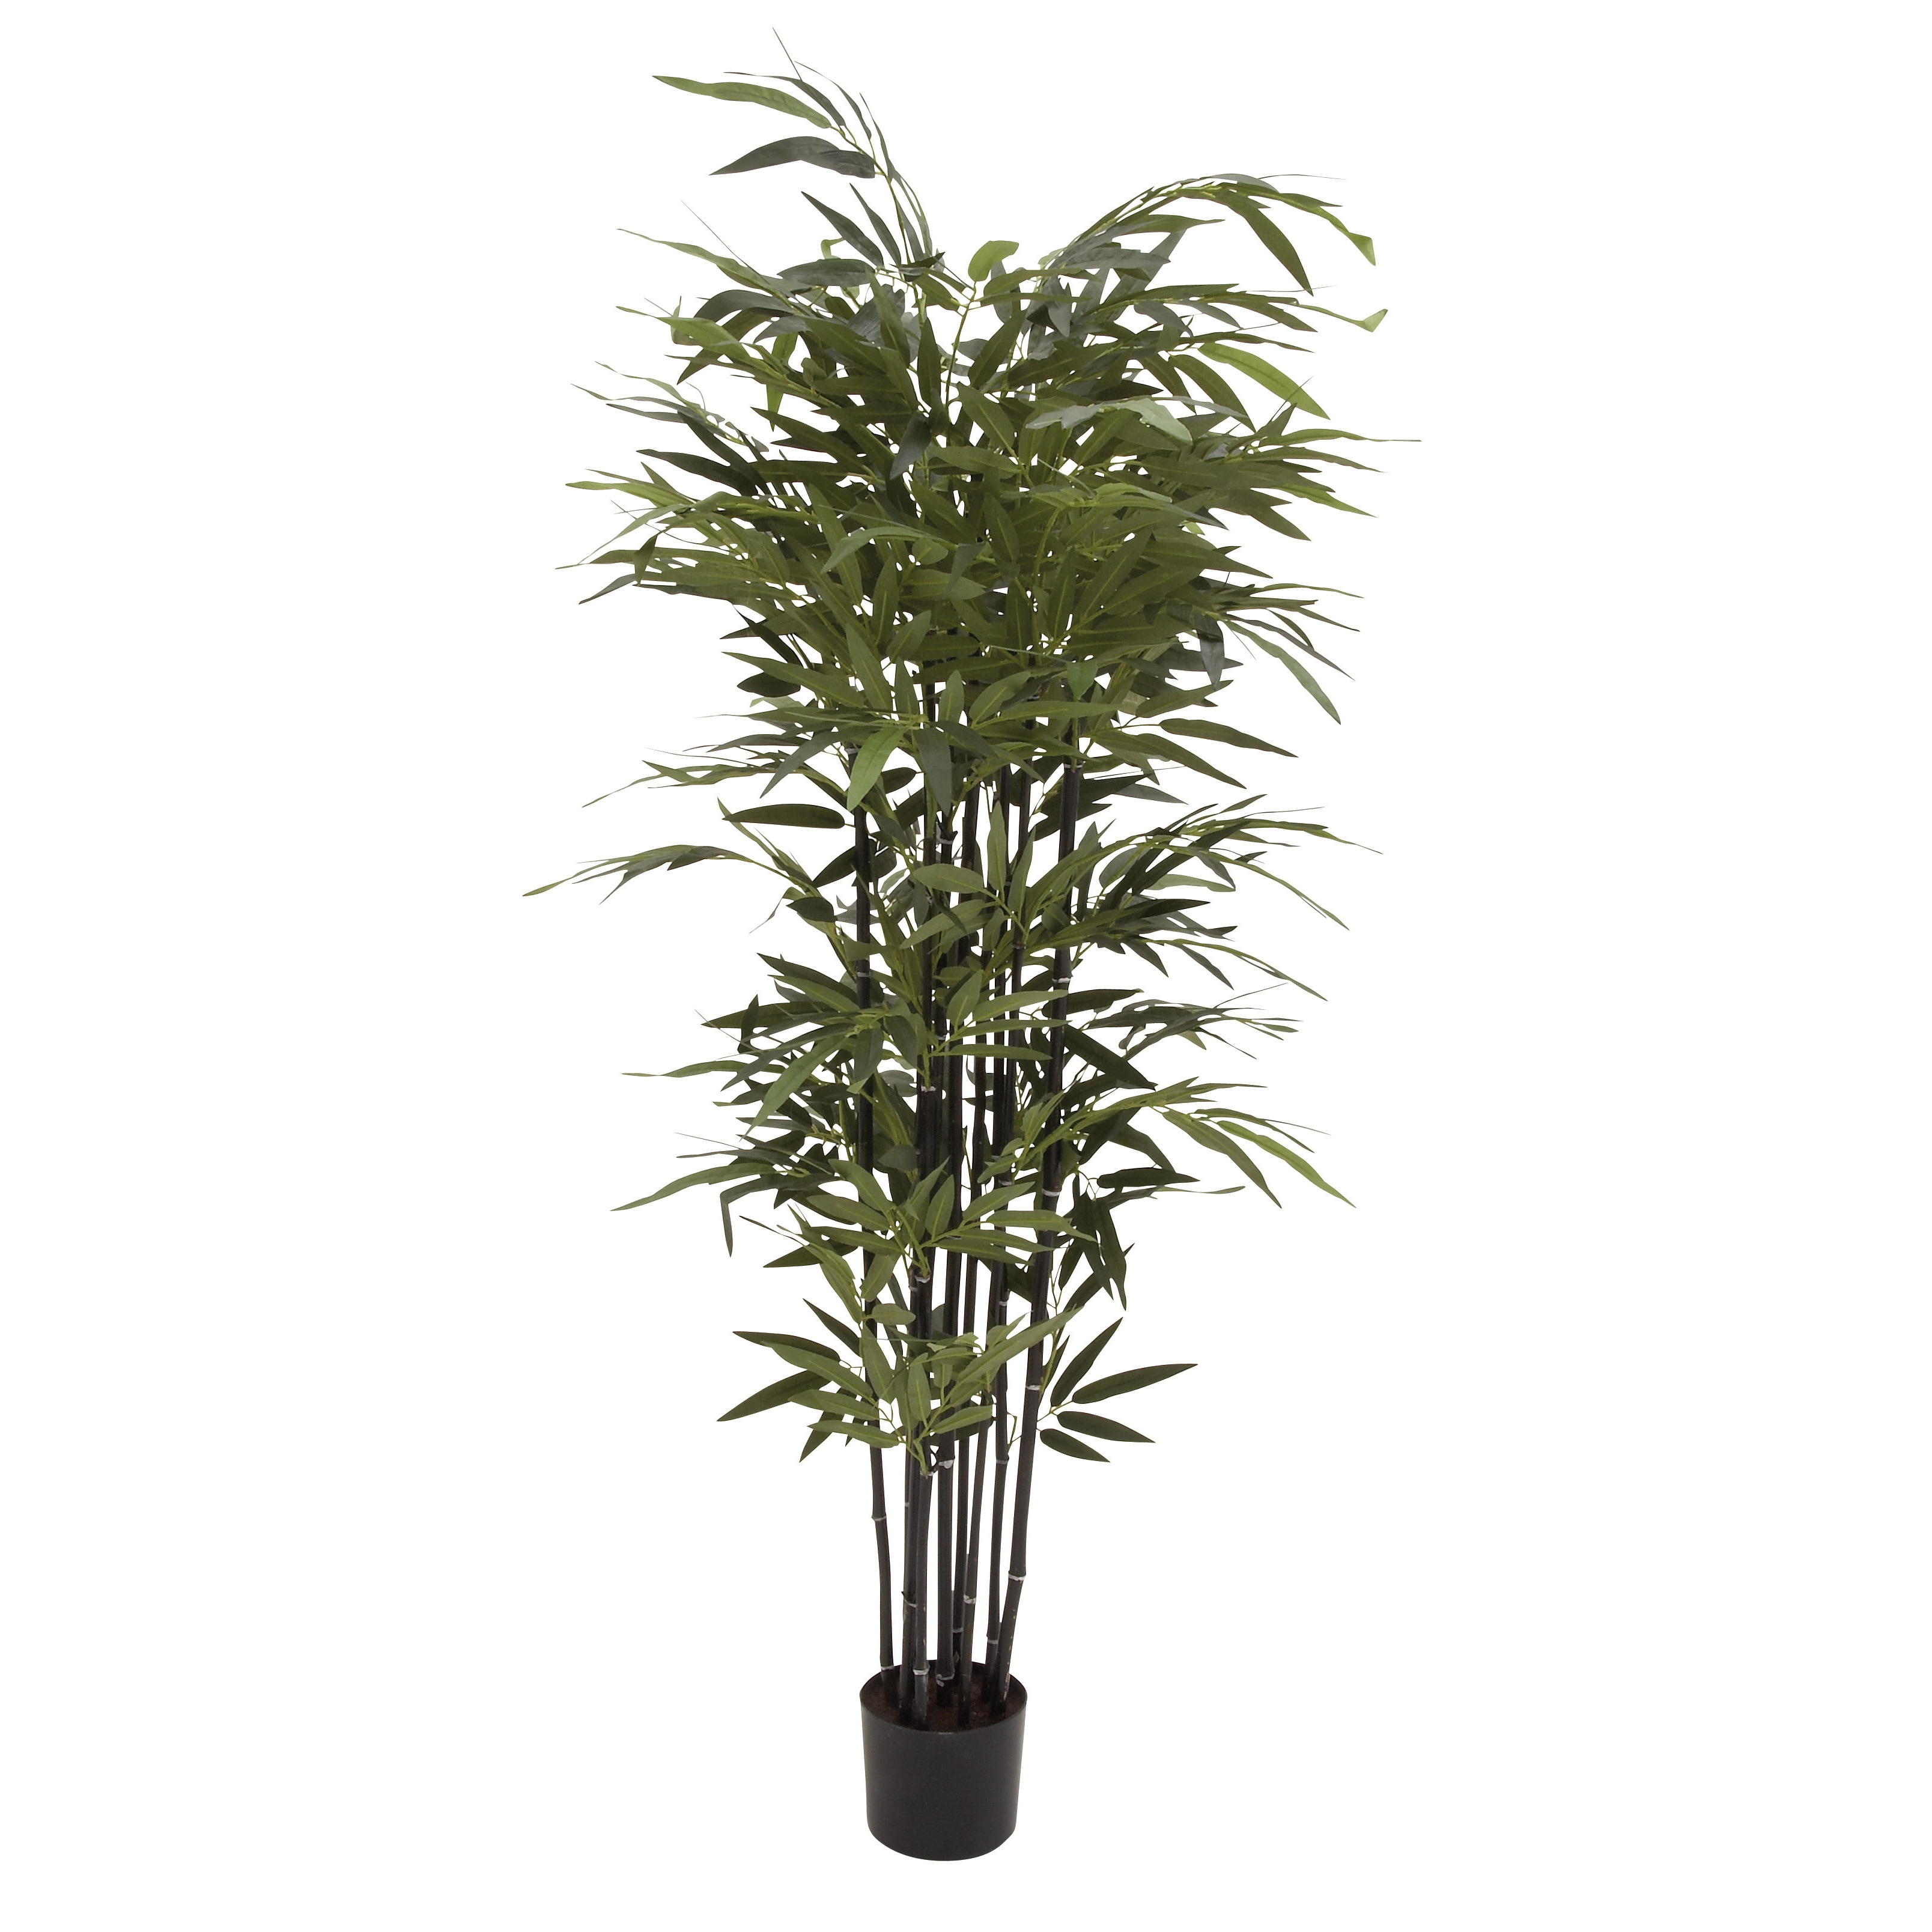 Natural Polyethylene Potted BK Bamboo Tree 27-inch, 70-inch - Free Shipping  Today - Overstock.com - 18640098